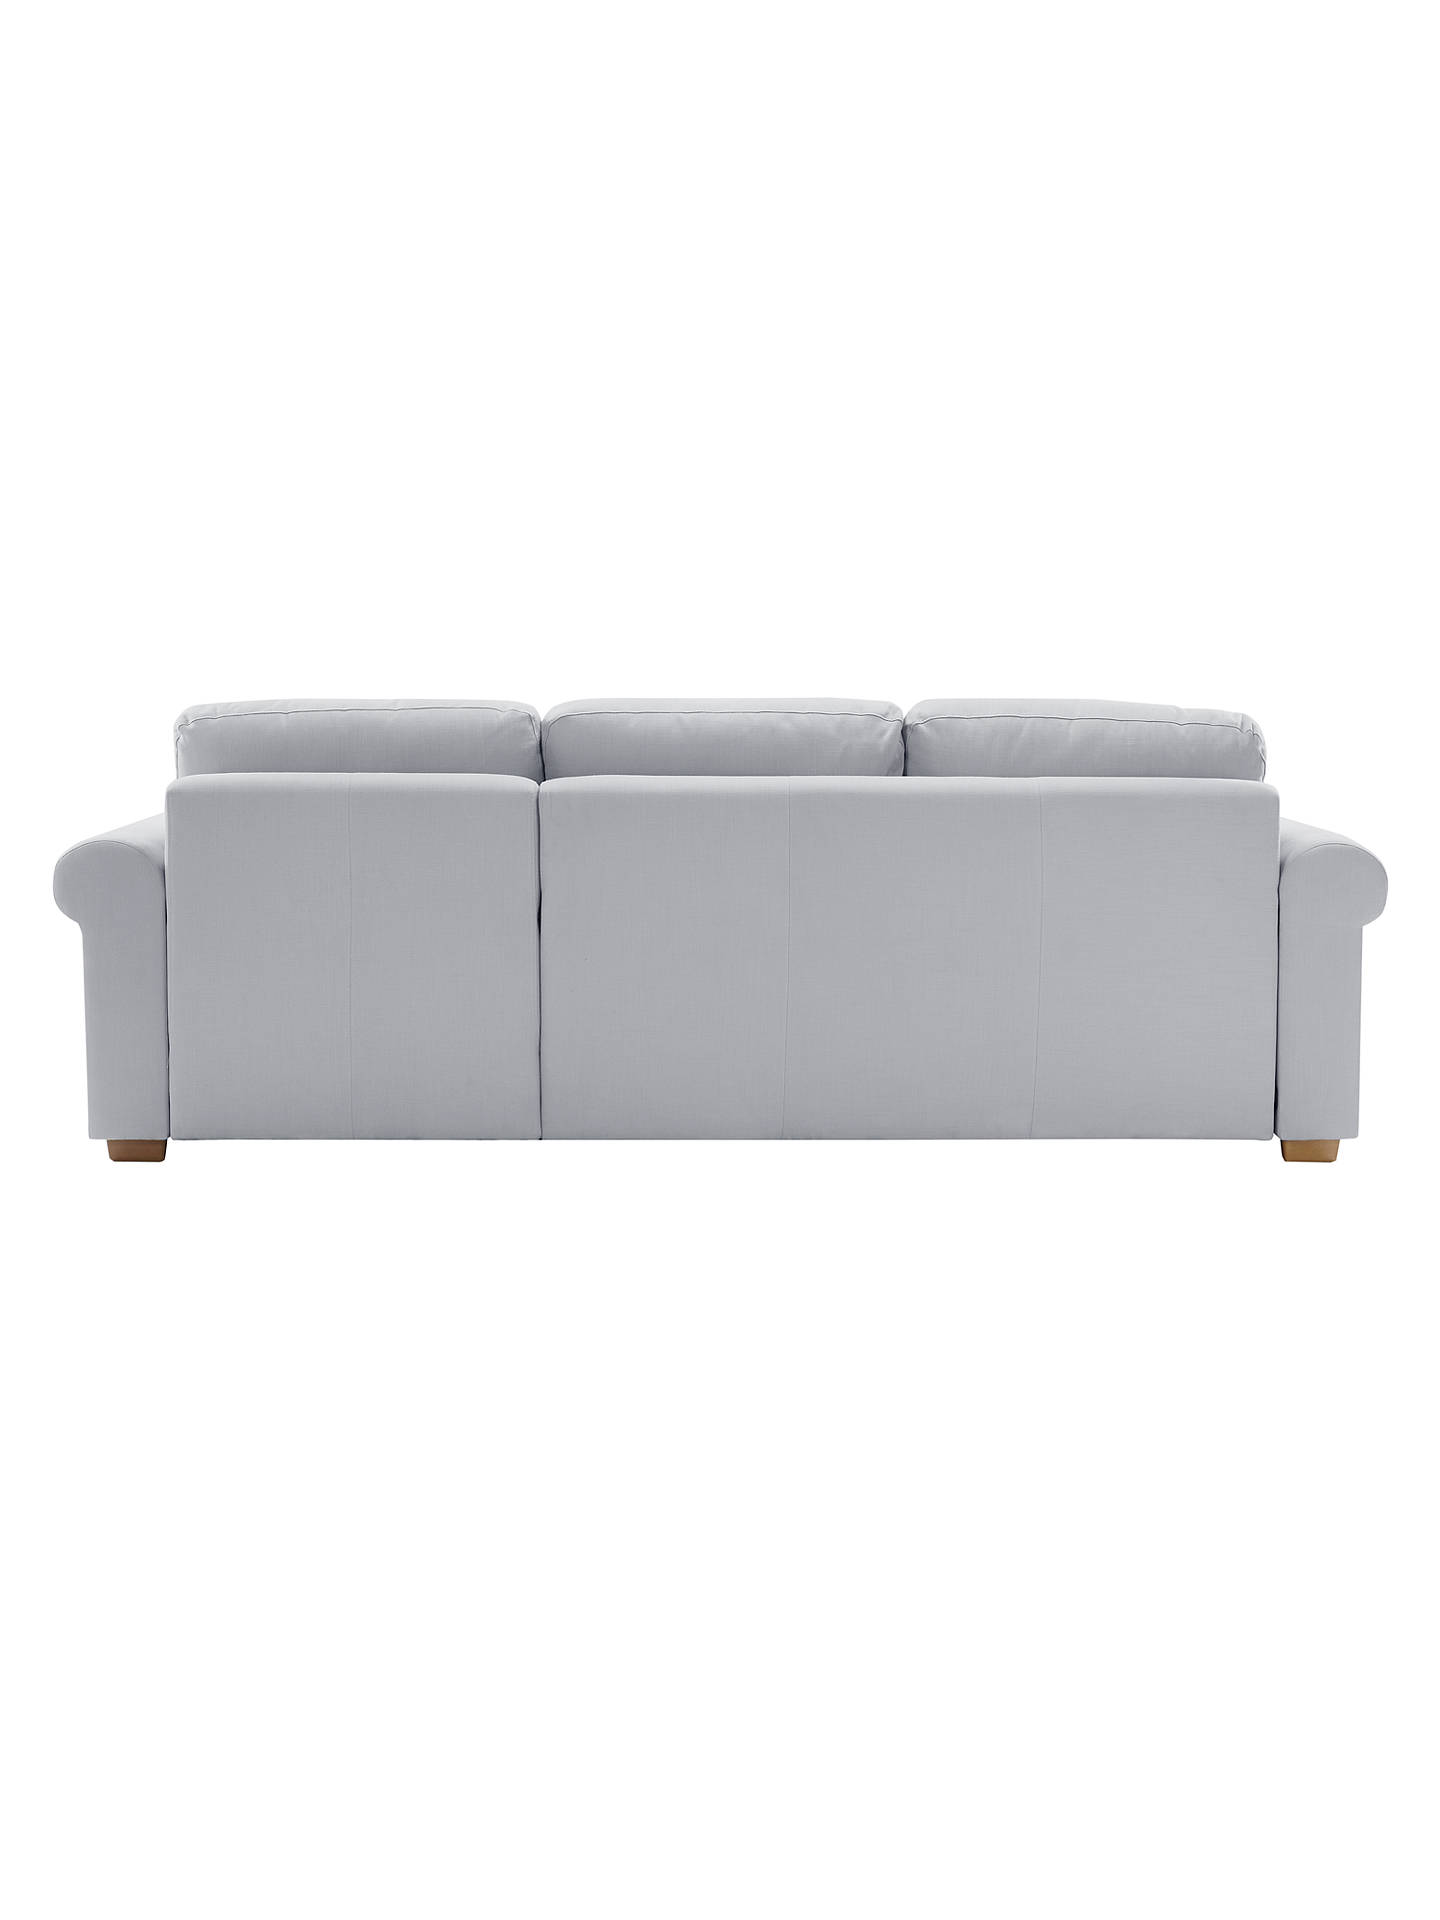 Surprising John Lewis Sacha Large Scroll Arm Storage Sofa Bed At John Gmtry Best Dining Table And Chair Ideas Images Gmtryco